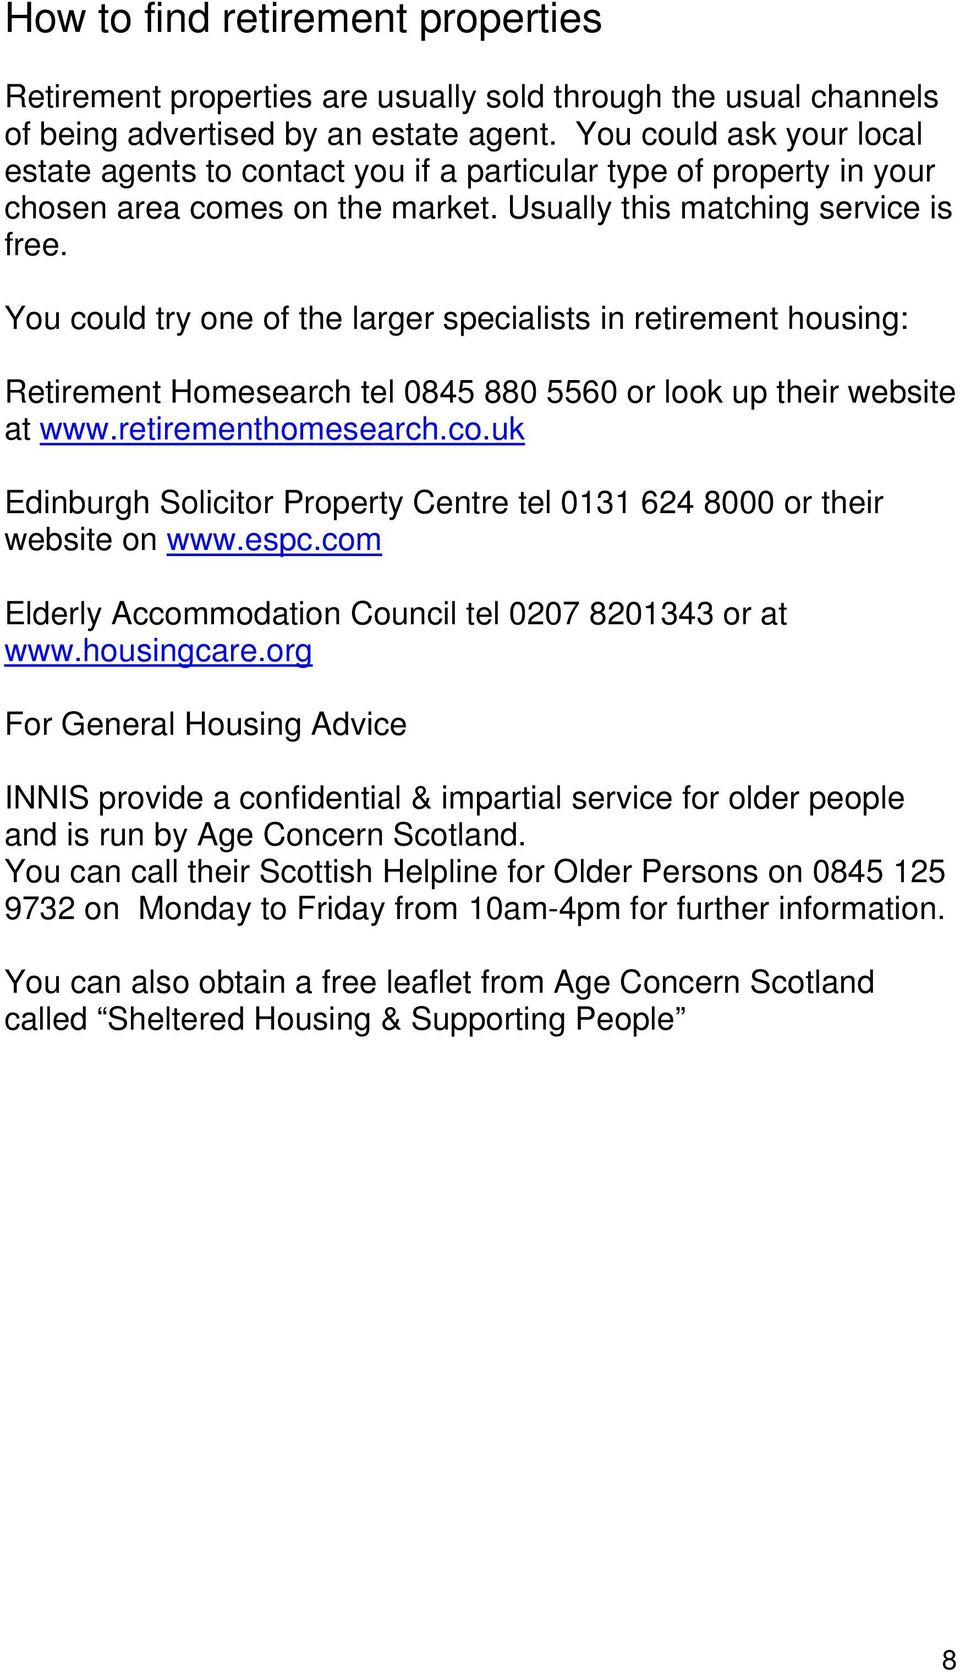 You could try one of the larger specialists in retirement housing: Retirement Homesearch tel 0845 880 5560 or look up their website at www.retirementhomesearch.co.uk Edinburgh Solicitor Property Centre tel 0131 624 8000 or their website on www.